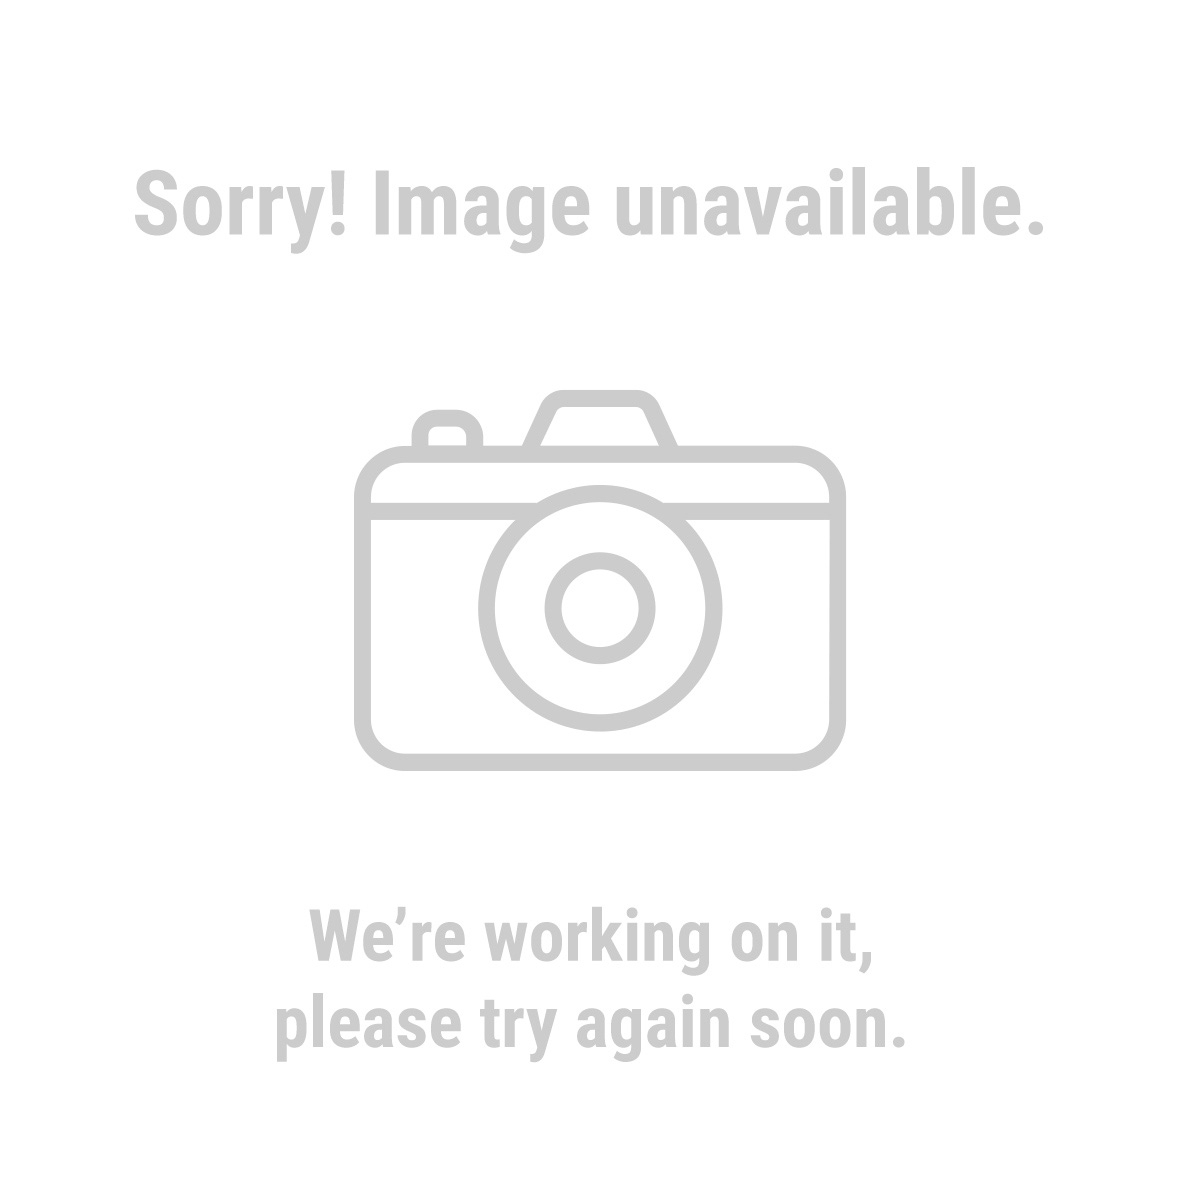 2 hp compressor duty motor